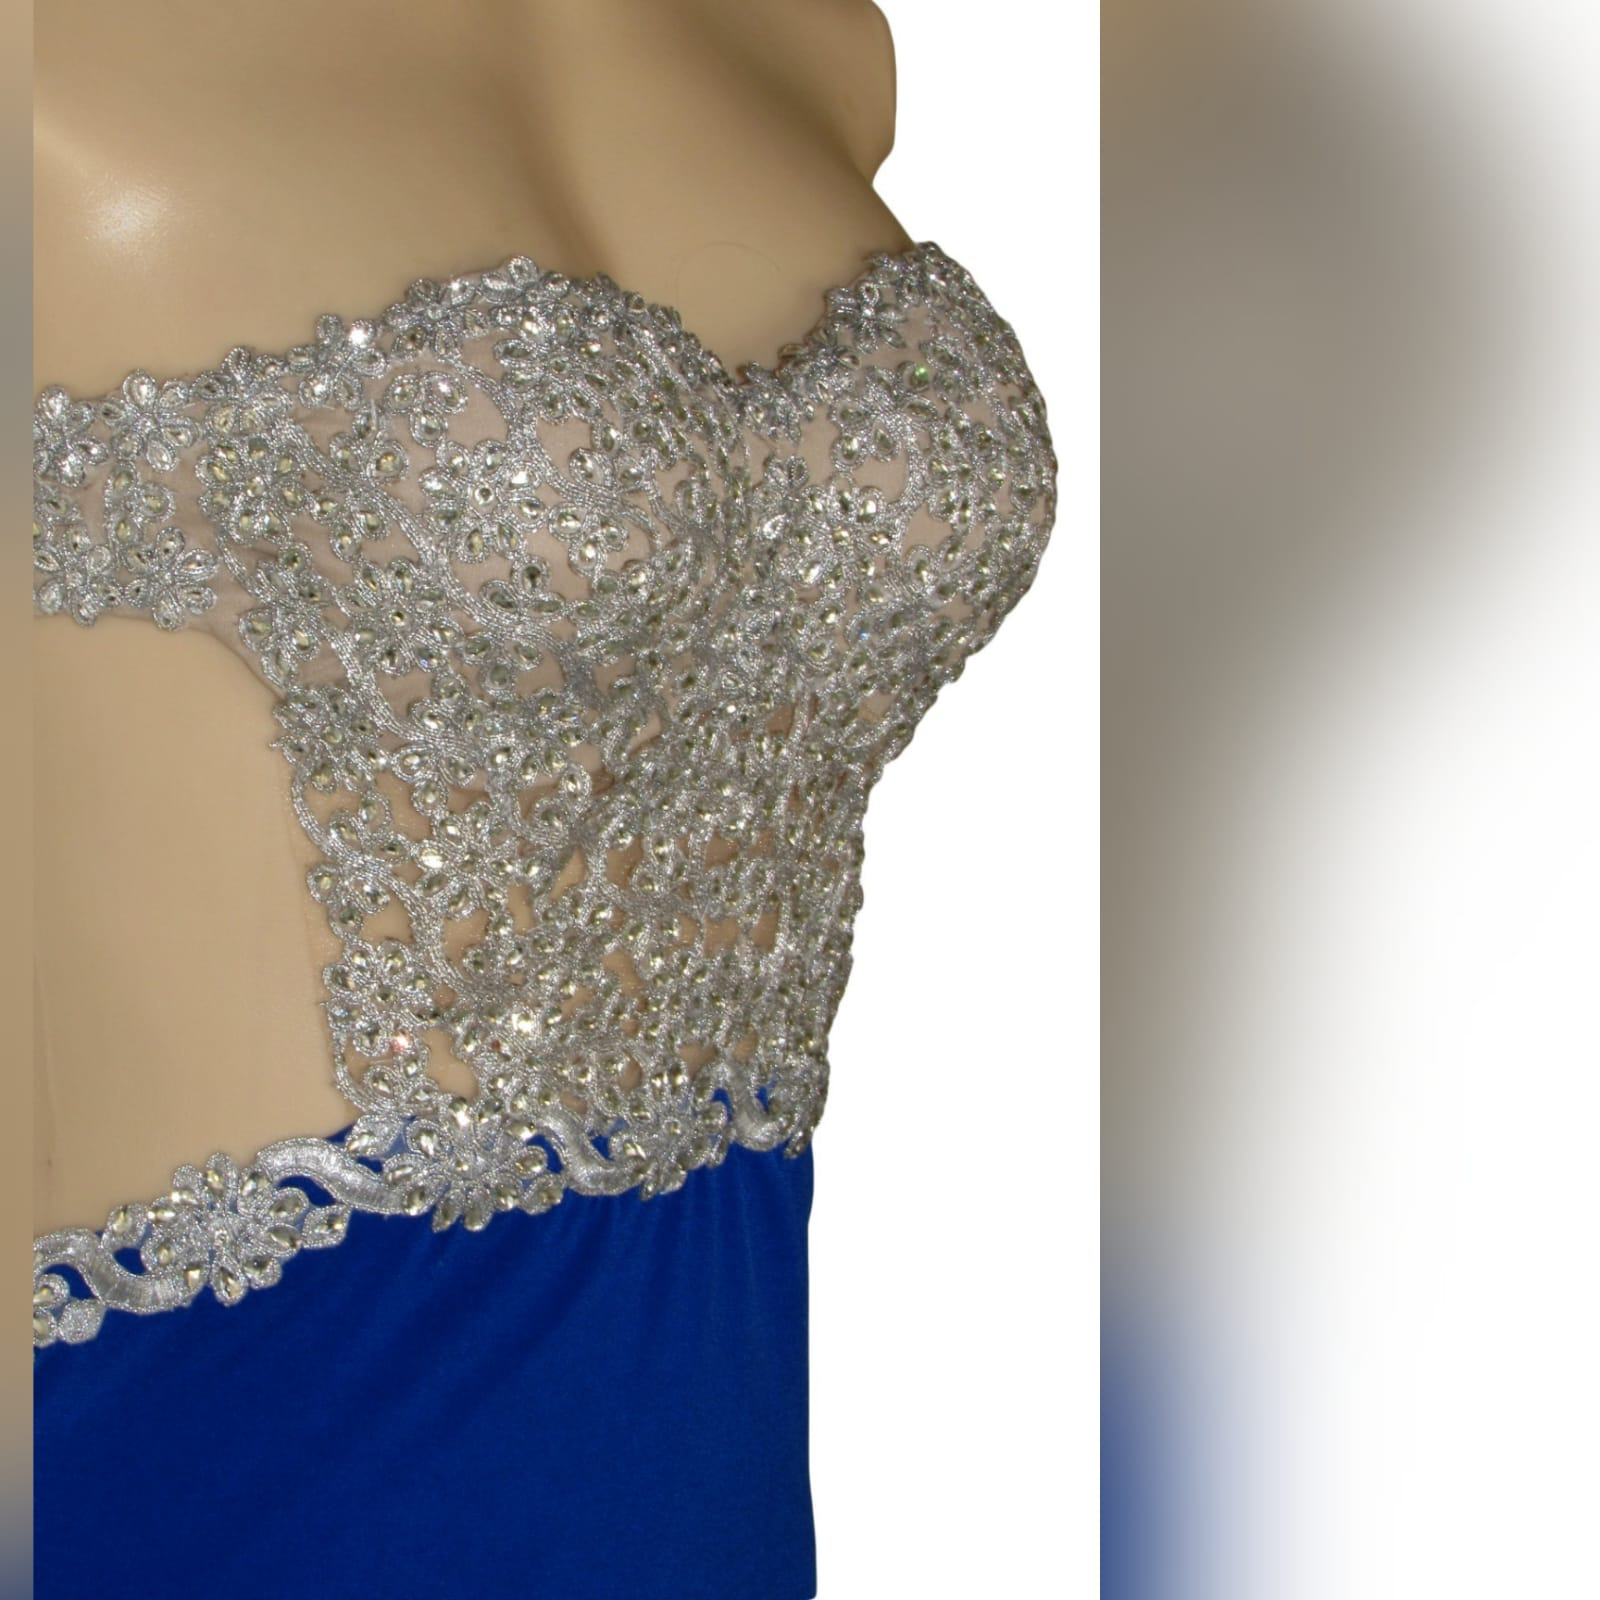 Royal blue and silver sexy ceremony dress 2 royal blue and silver sexy ceremony dress. Designed and made for a prom dance. With a lace and beaded boobtube bodice, a naked back and flowy bottom with a slit and a train.